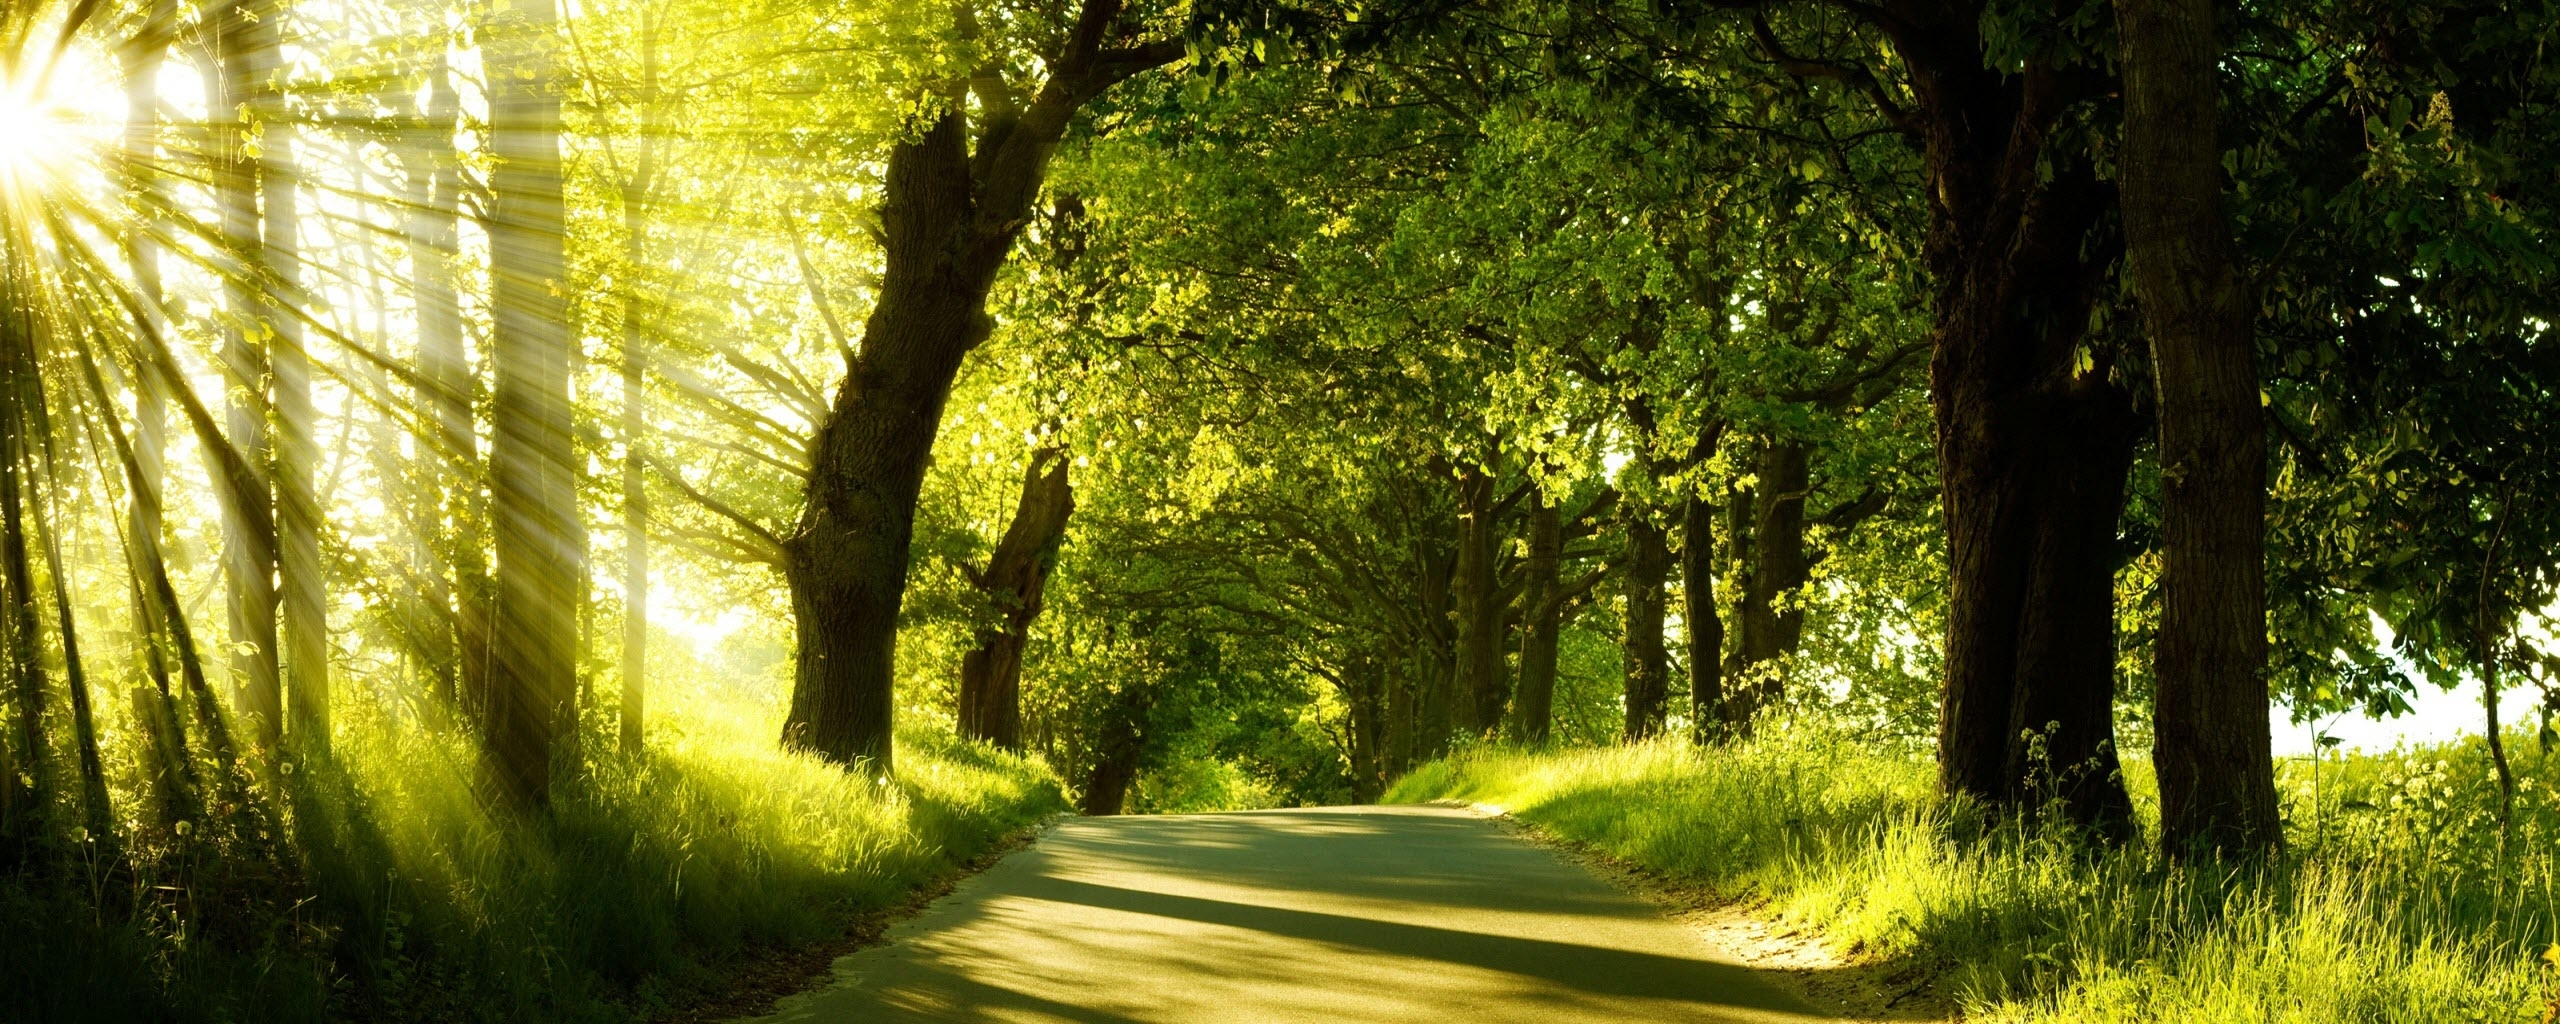 green nature dual monitor wallpapers | hd wallpapers | id #8220